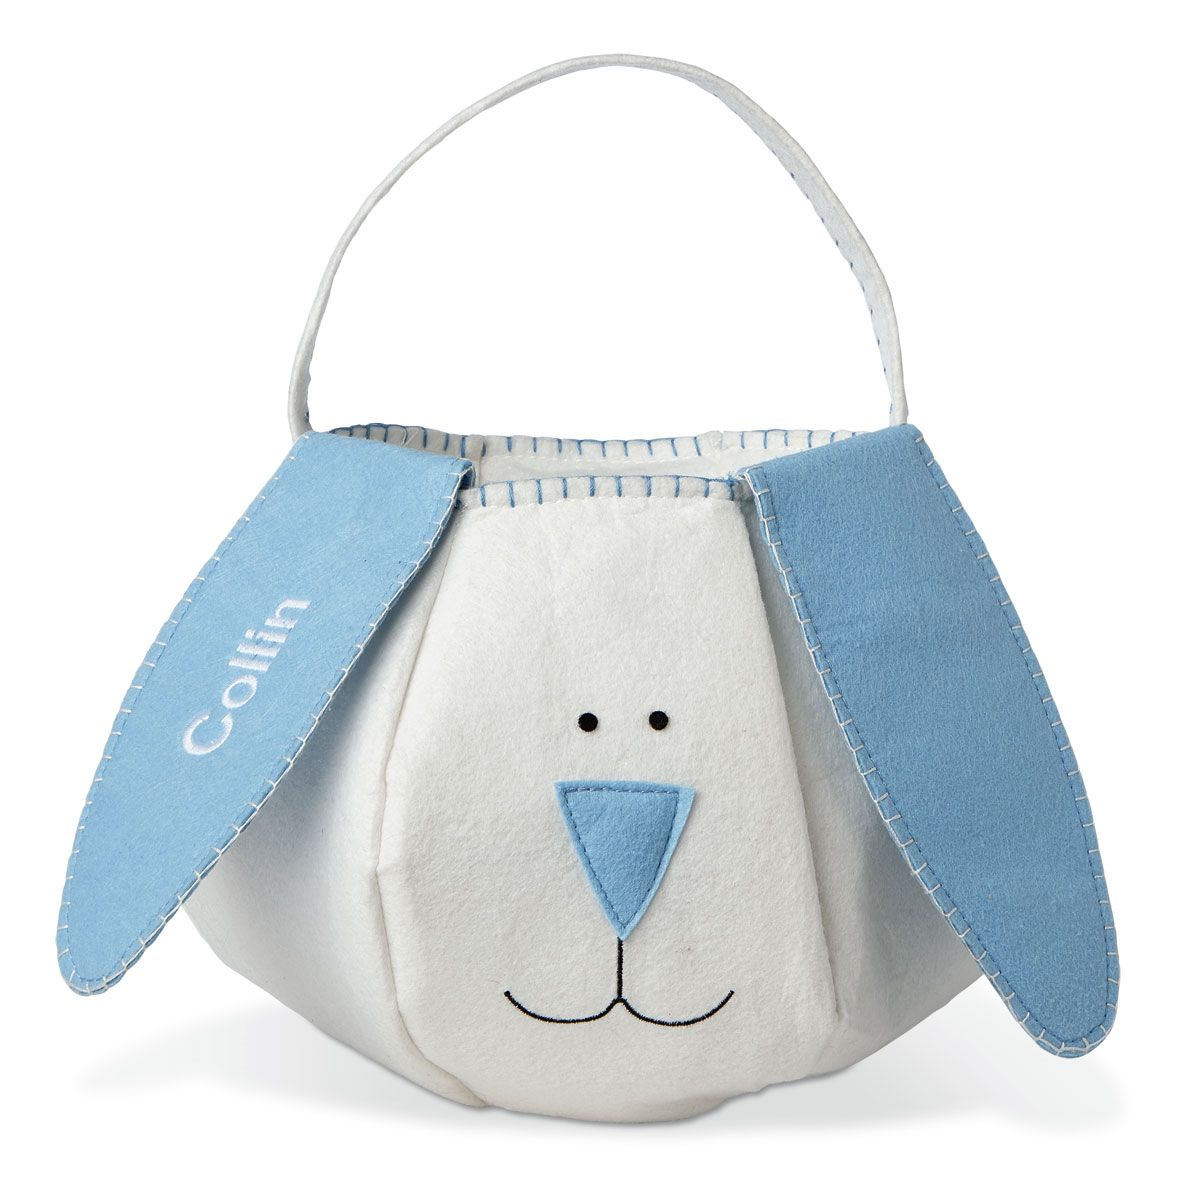 Easter Bunny Personalized Basket-Blue-816468